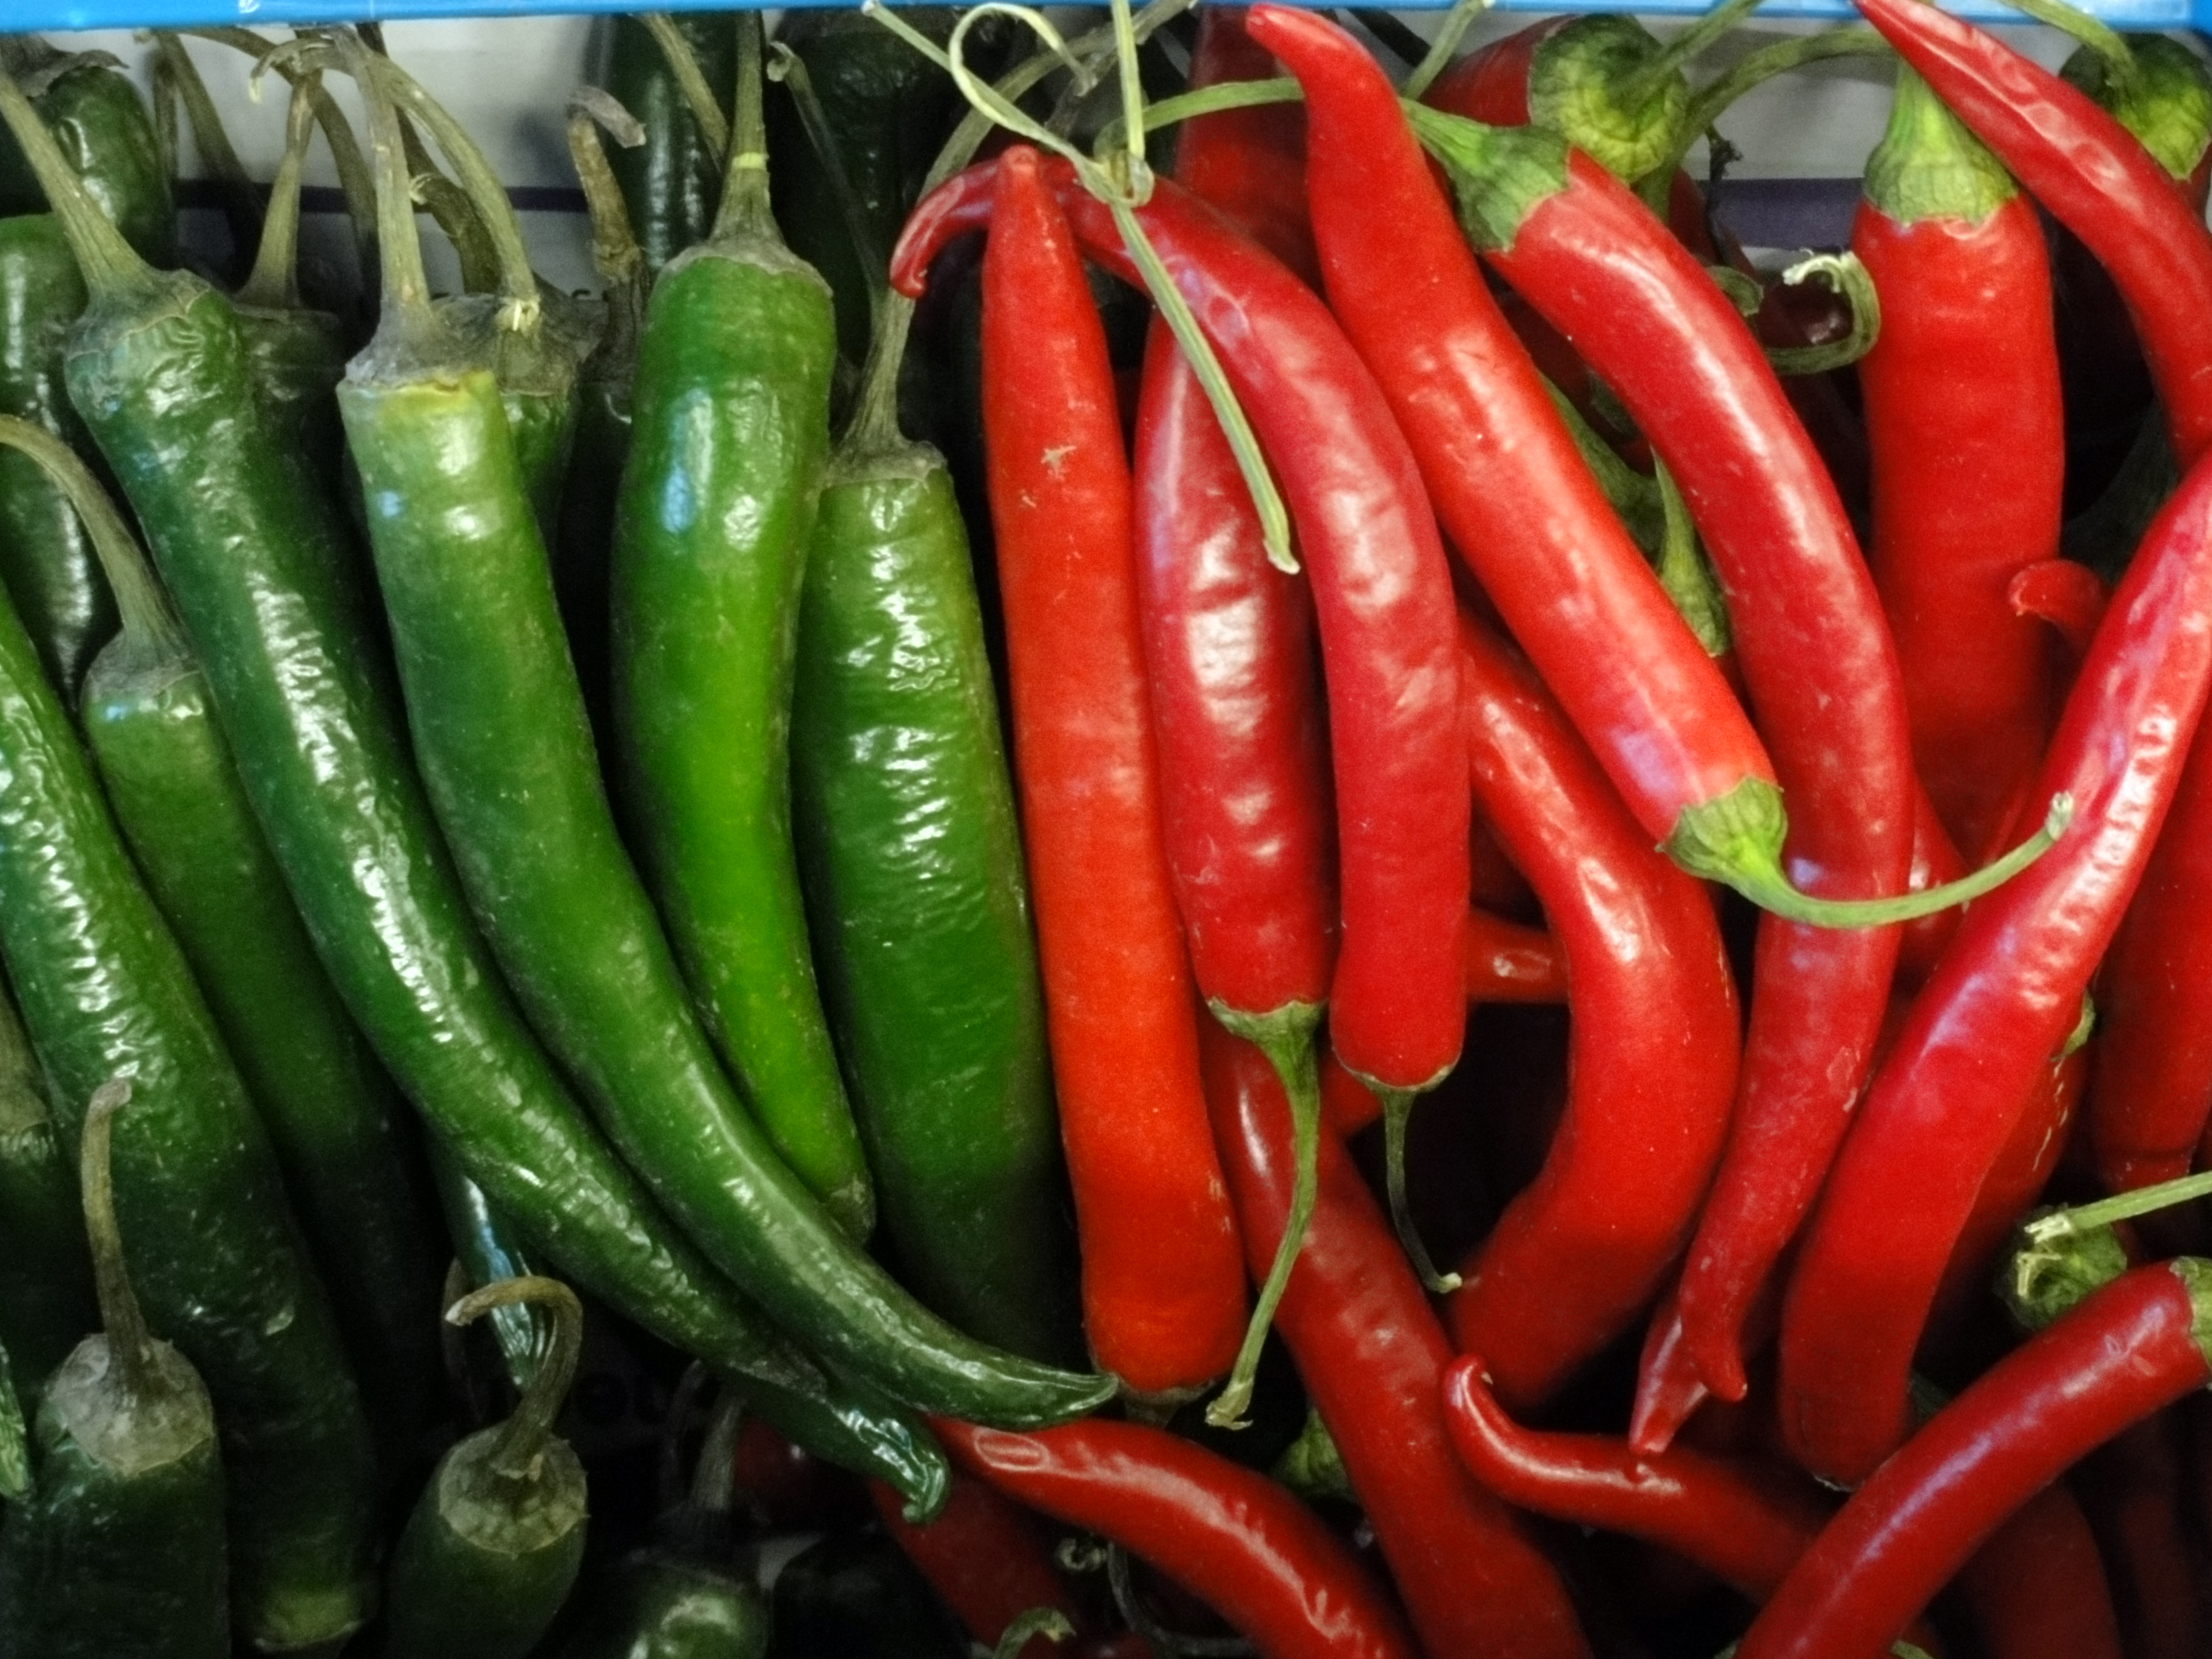 File:Chillies red and green.jpg - Wikimedia Commons